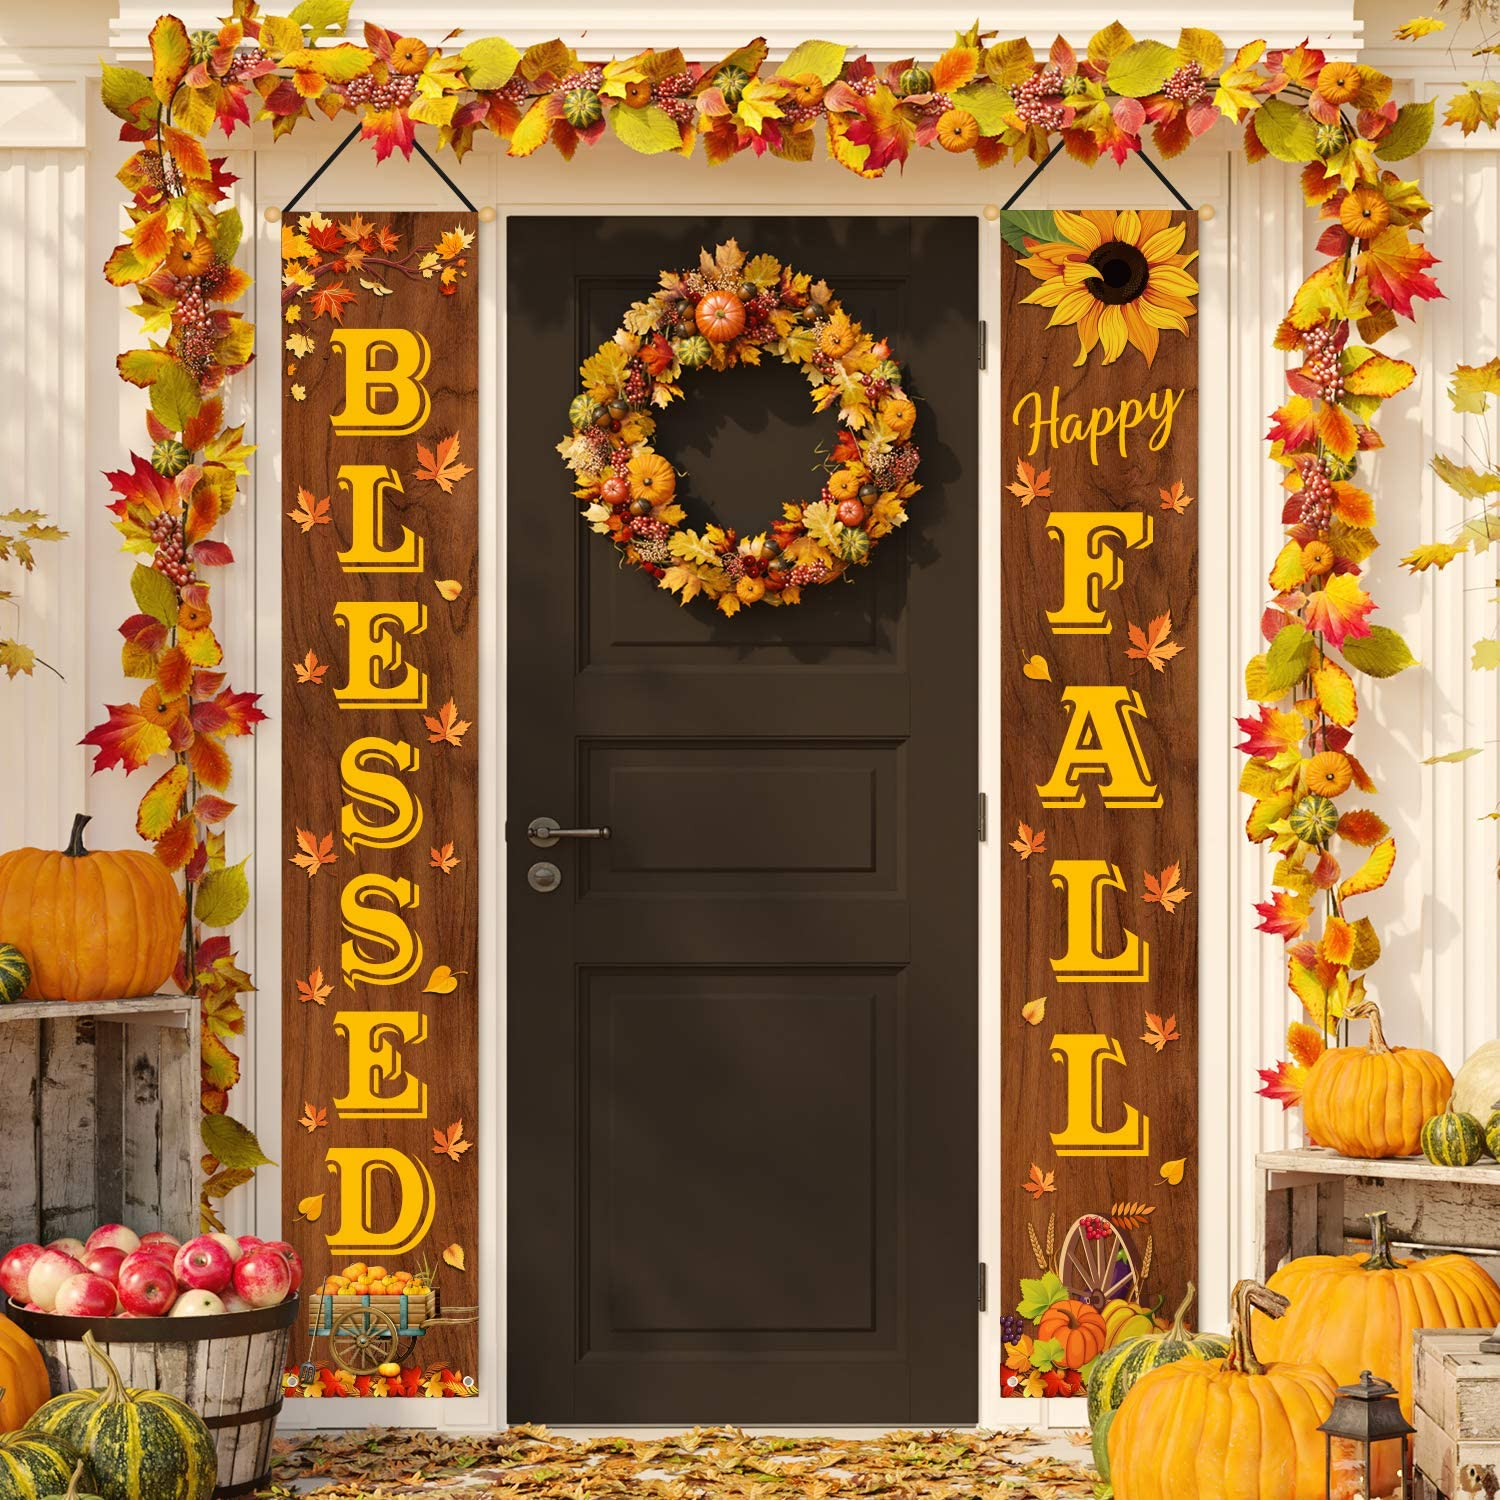 Whaline Fall Harvest Hanging Banner Happy Fall Blessed Porch Sign Rustic Autumn Sunflower Pumpkin Maple Leaves Door Sign For Indoor Outdoor Home Farmhouse Yard Harvest Thanksgiving Party Decor Arts Crafts